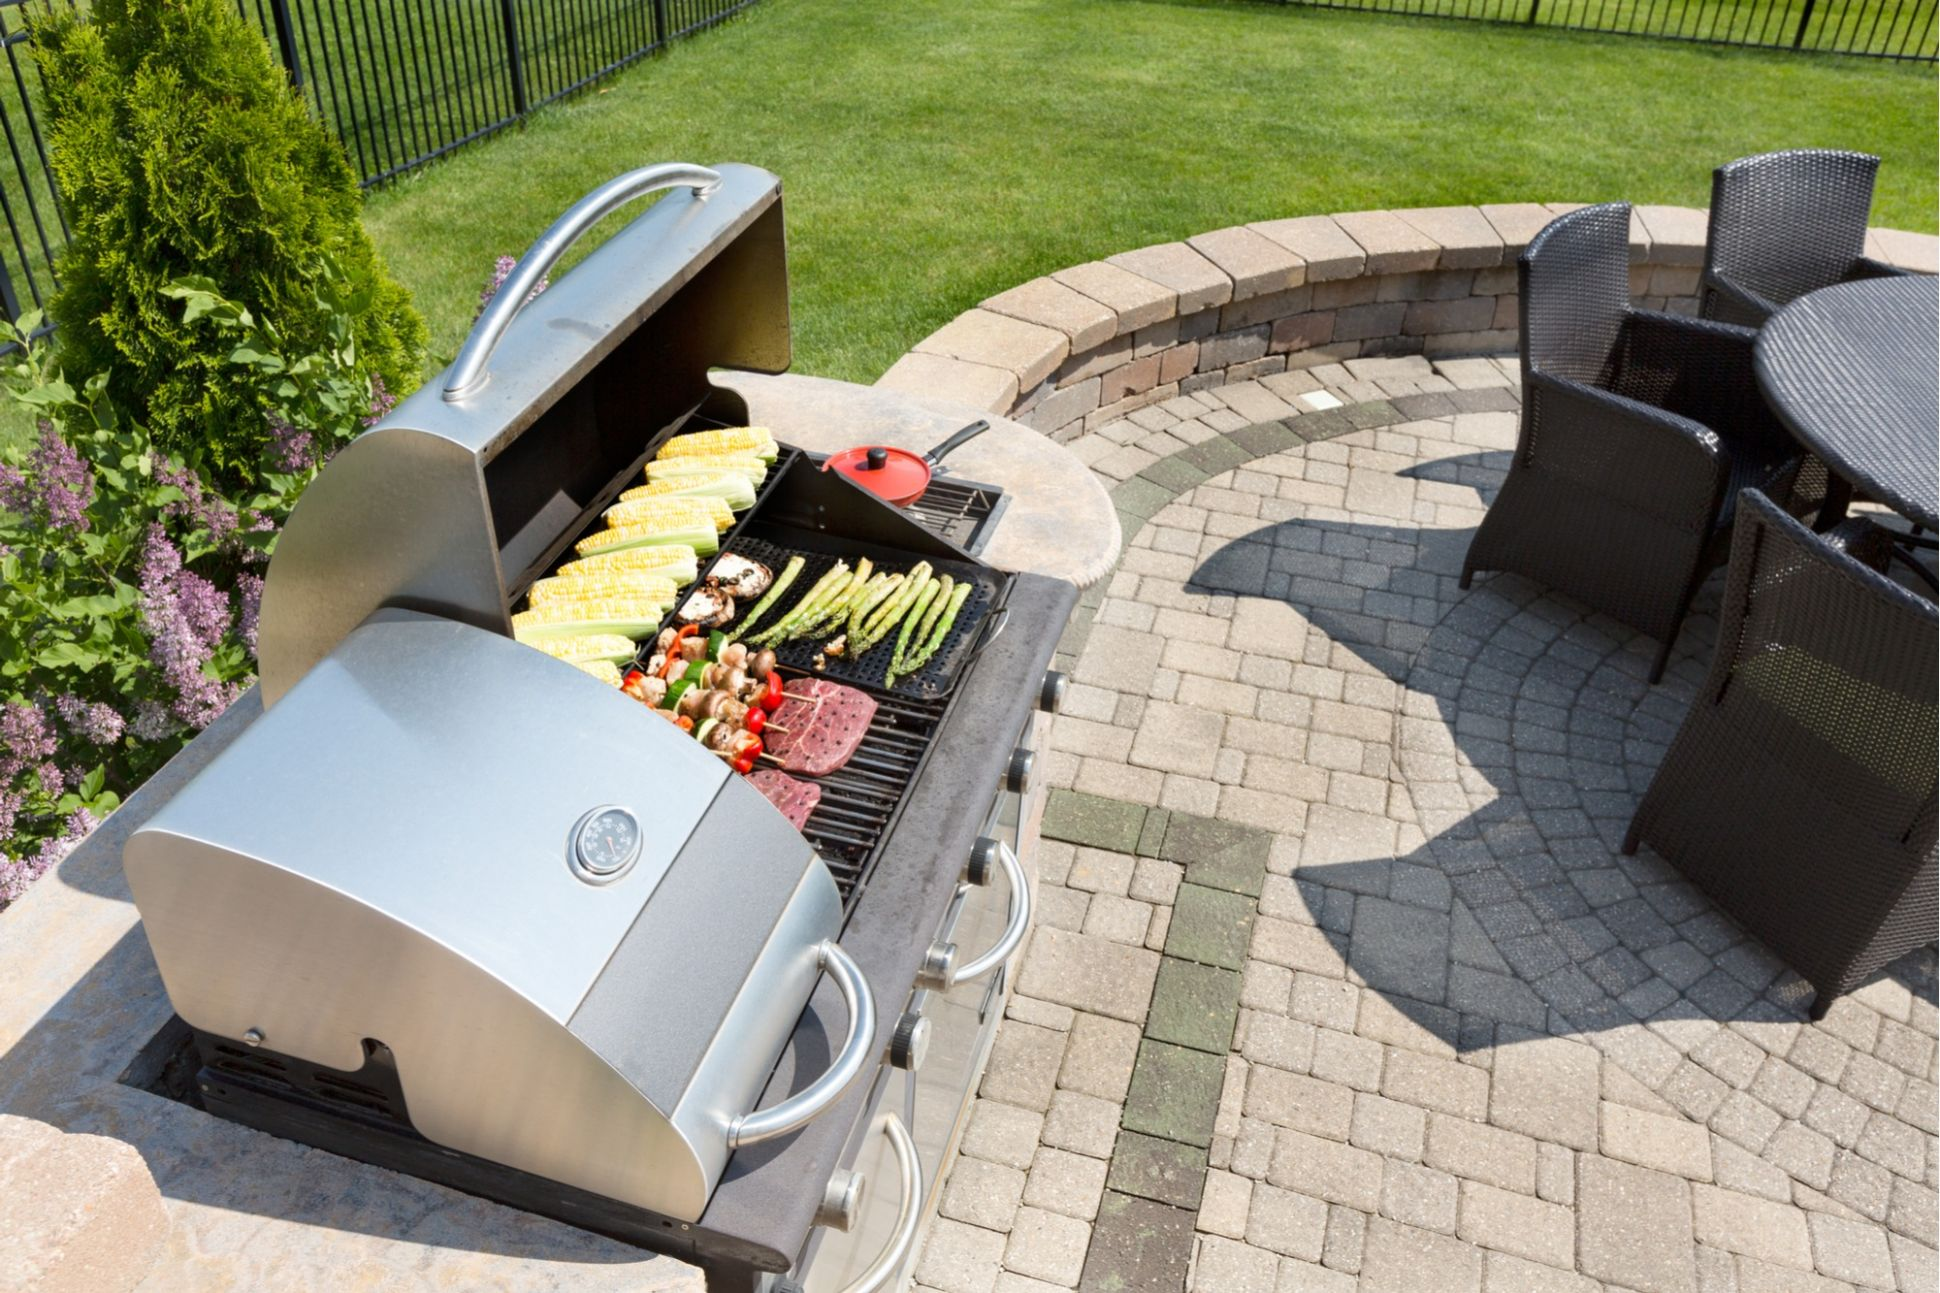 Alternatives To Grass In Backyard: Lawn Replacement Tips | Install ..